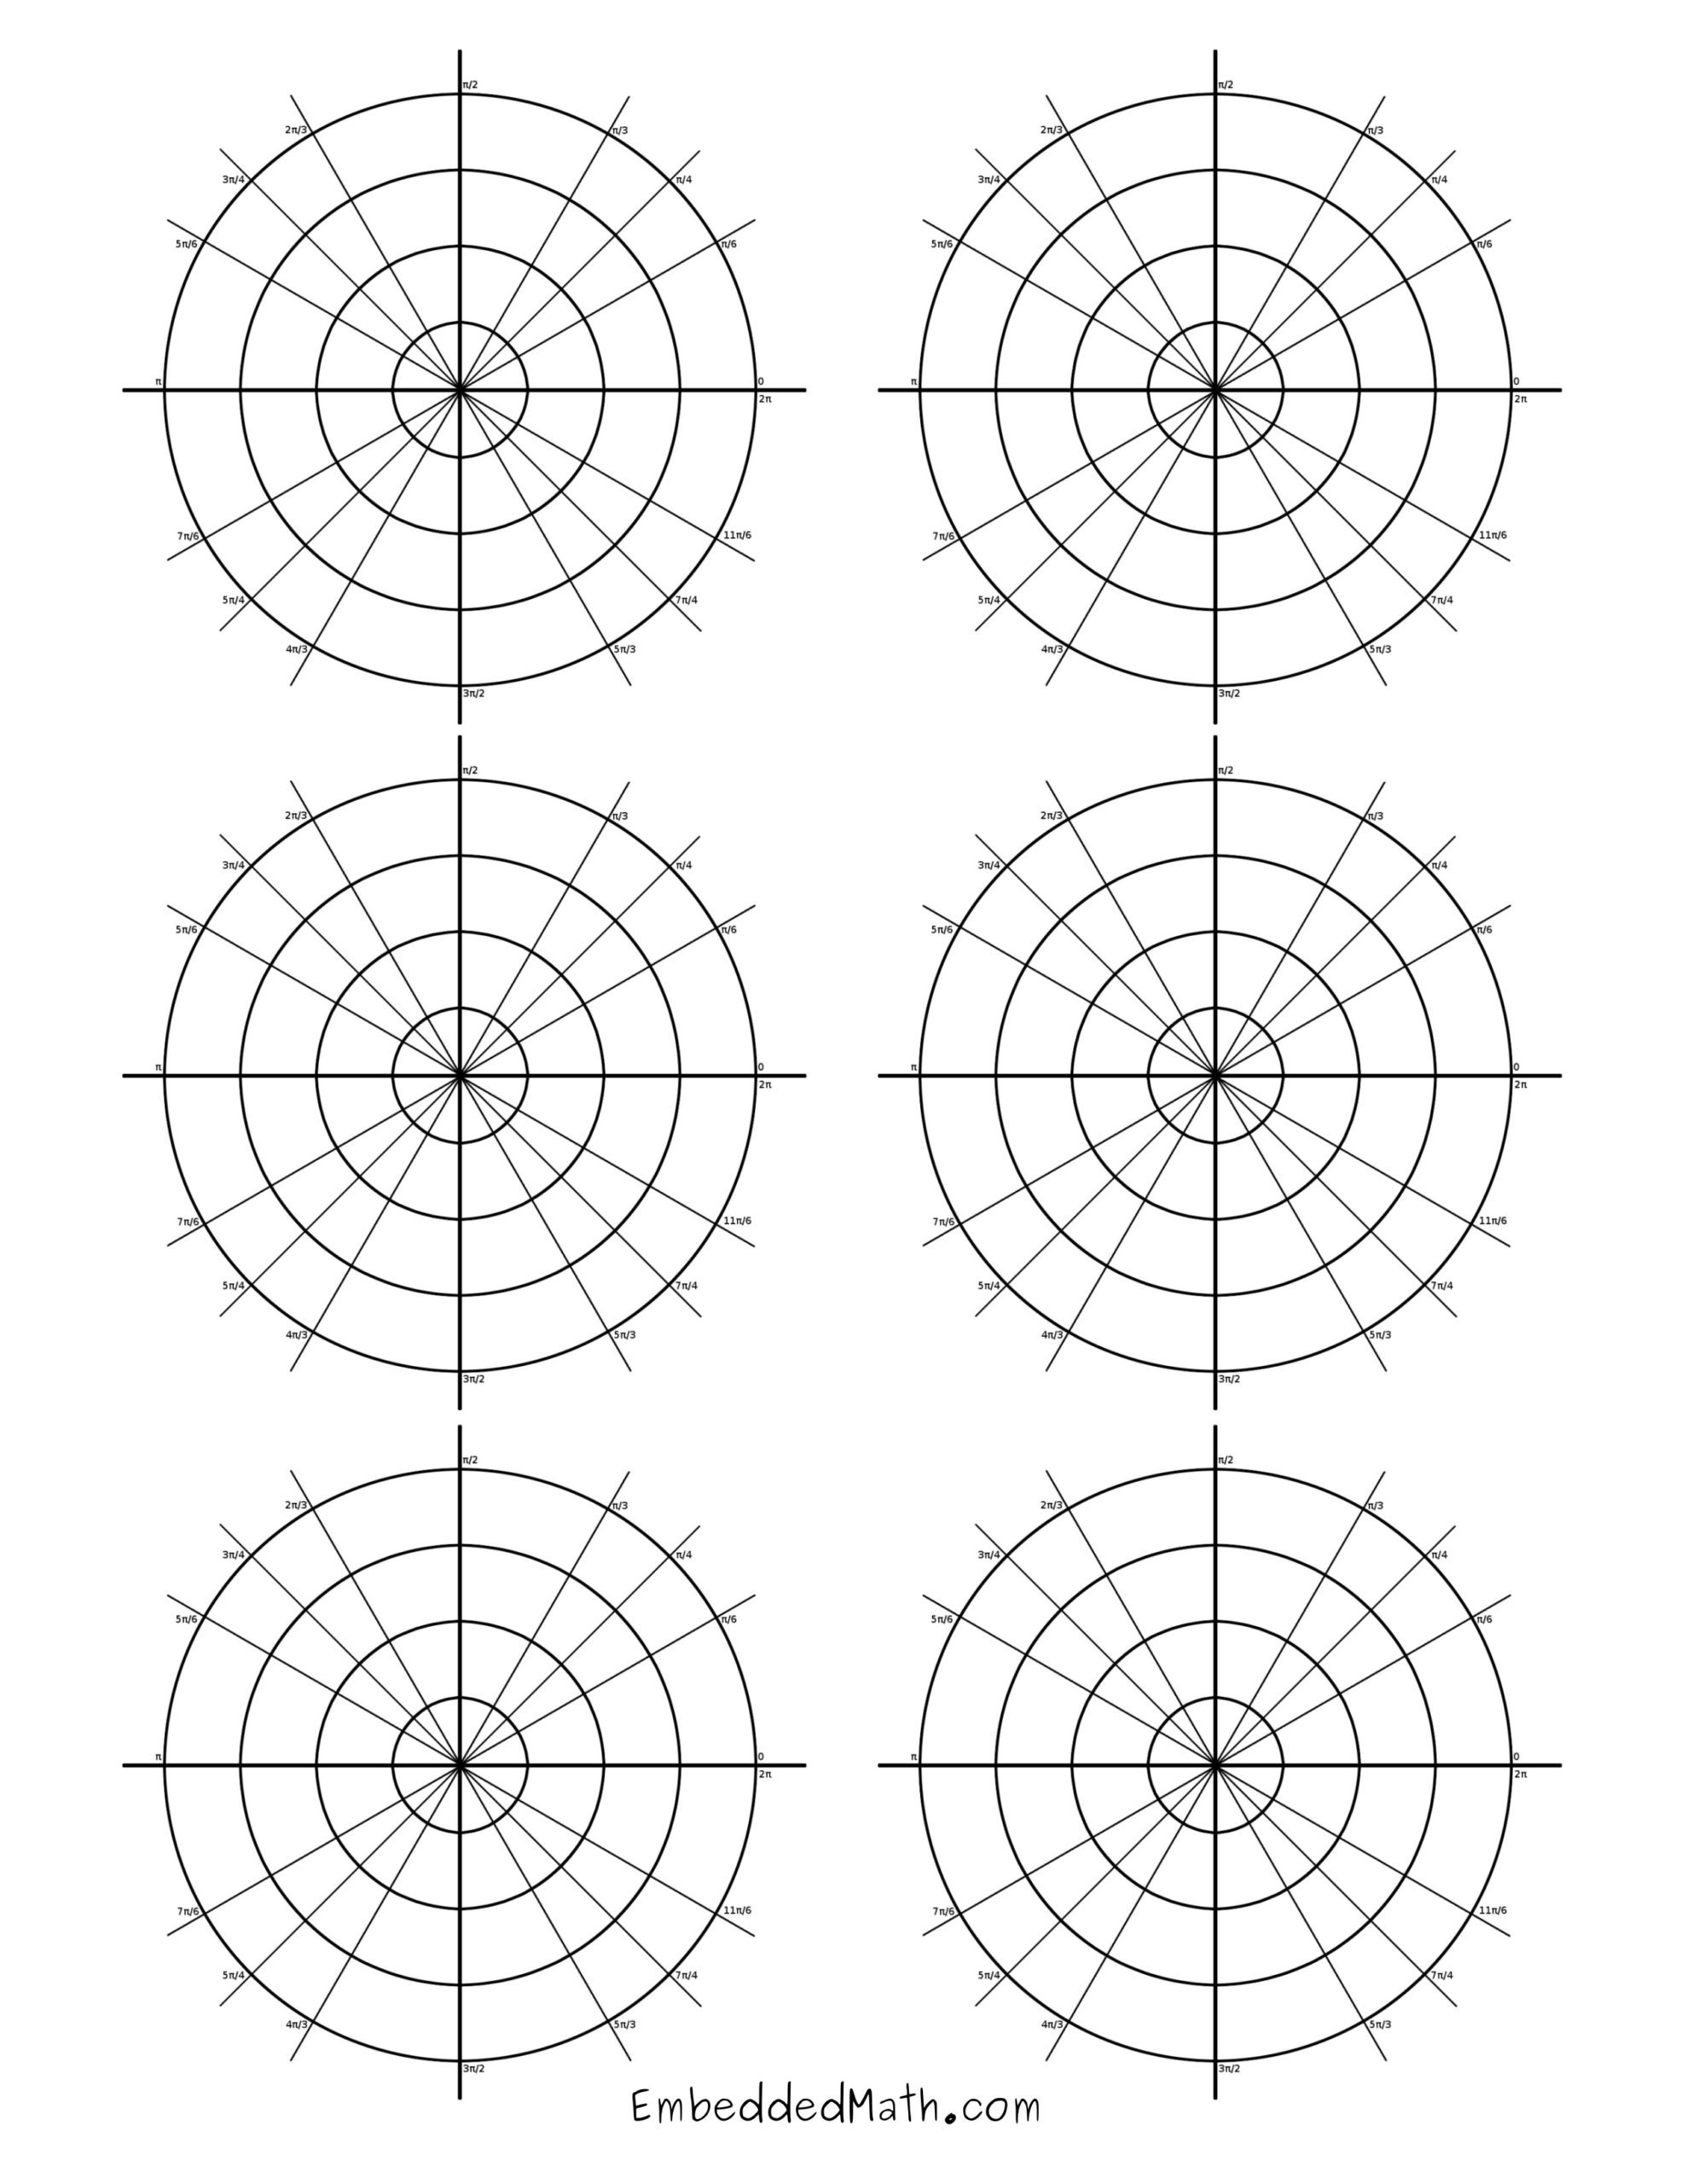 Coordinate Plane Worksheets 5th Grade Multiplication Activities Year 3 Omatopoeia Worksheets for